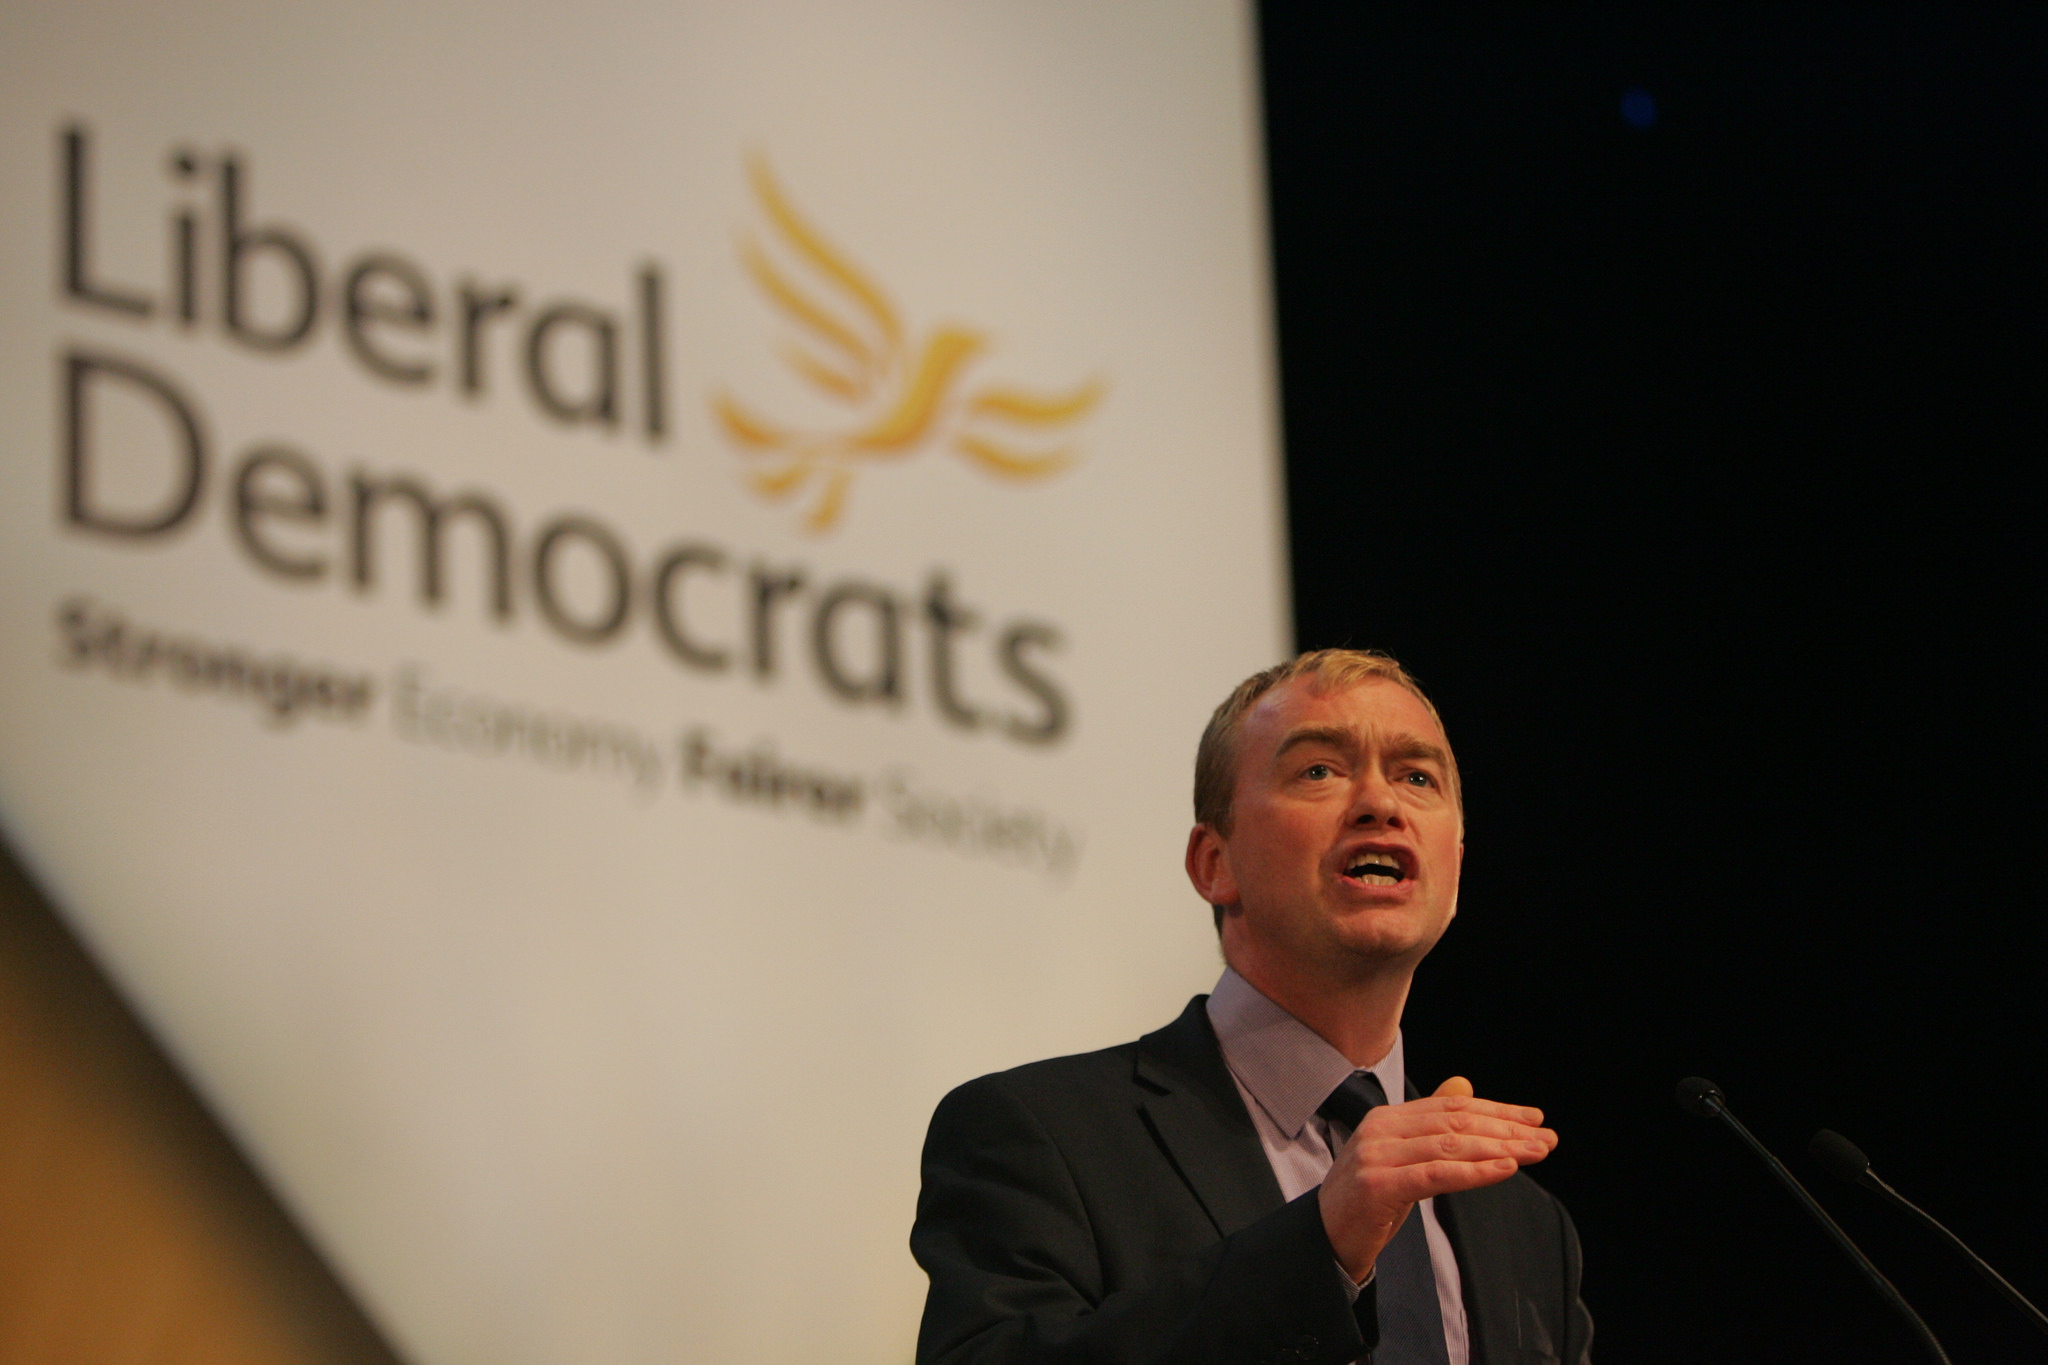 Liberal Democrats Leader concerned by recent student sex work report